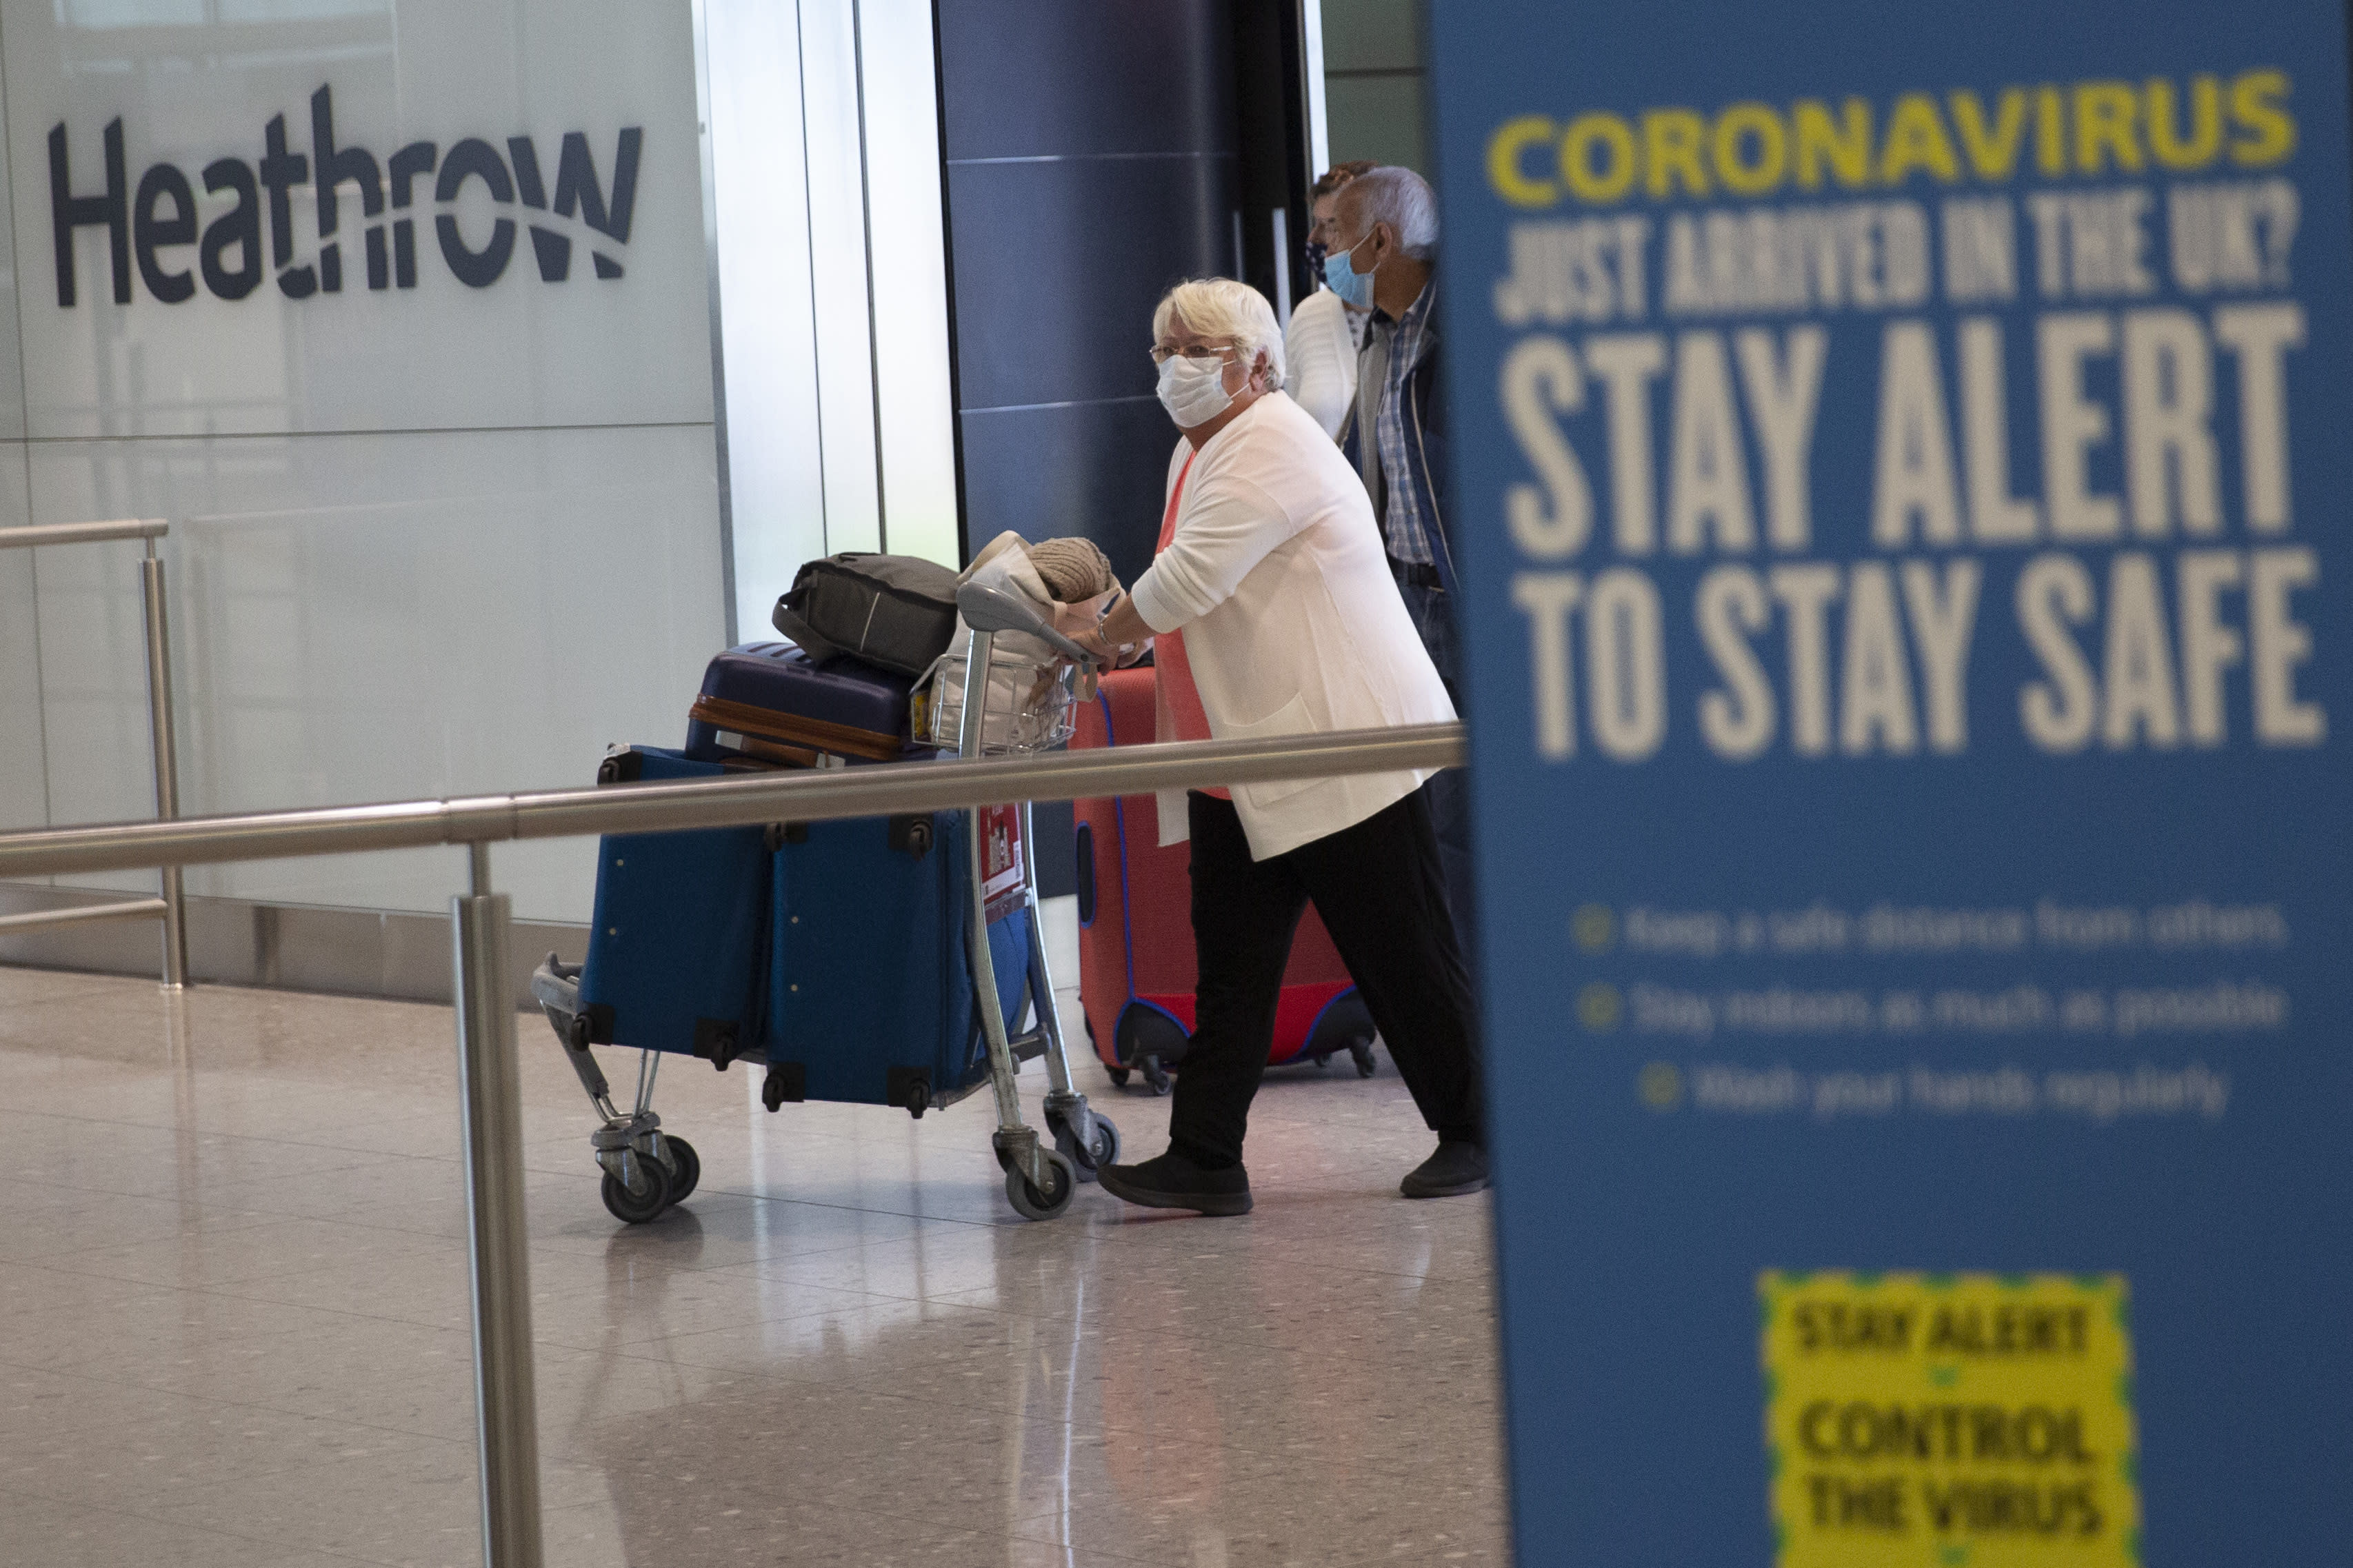 Passengers wearing face masks arrive at Heathrow Airport on the first day of new rules that require people arriving in Britain from overseas to quarantine themselves for 14 days. (AP)